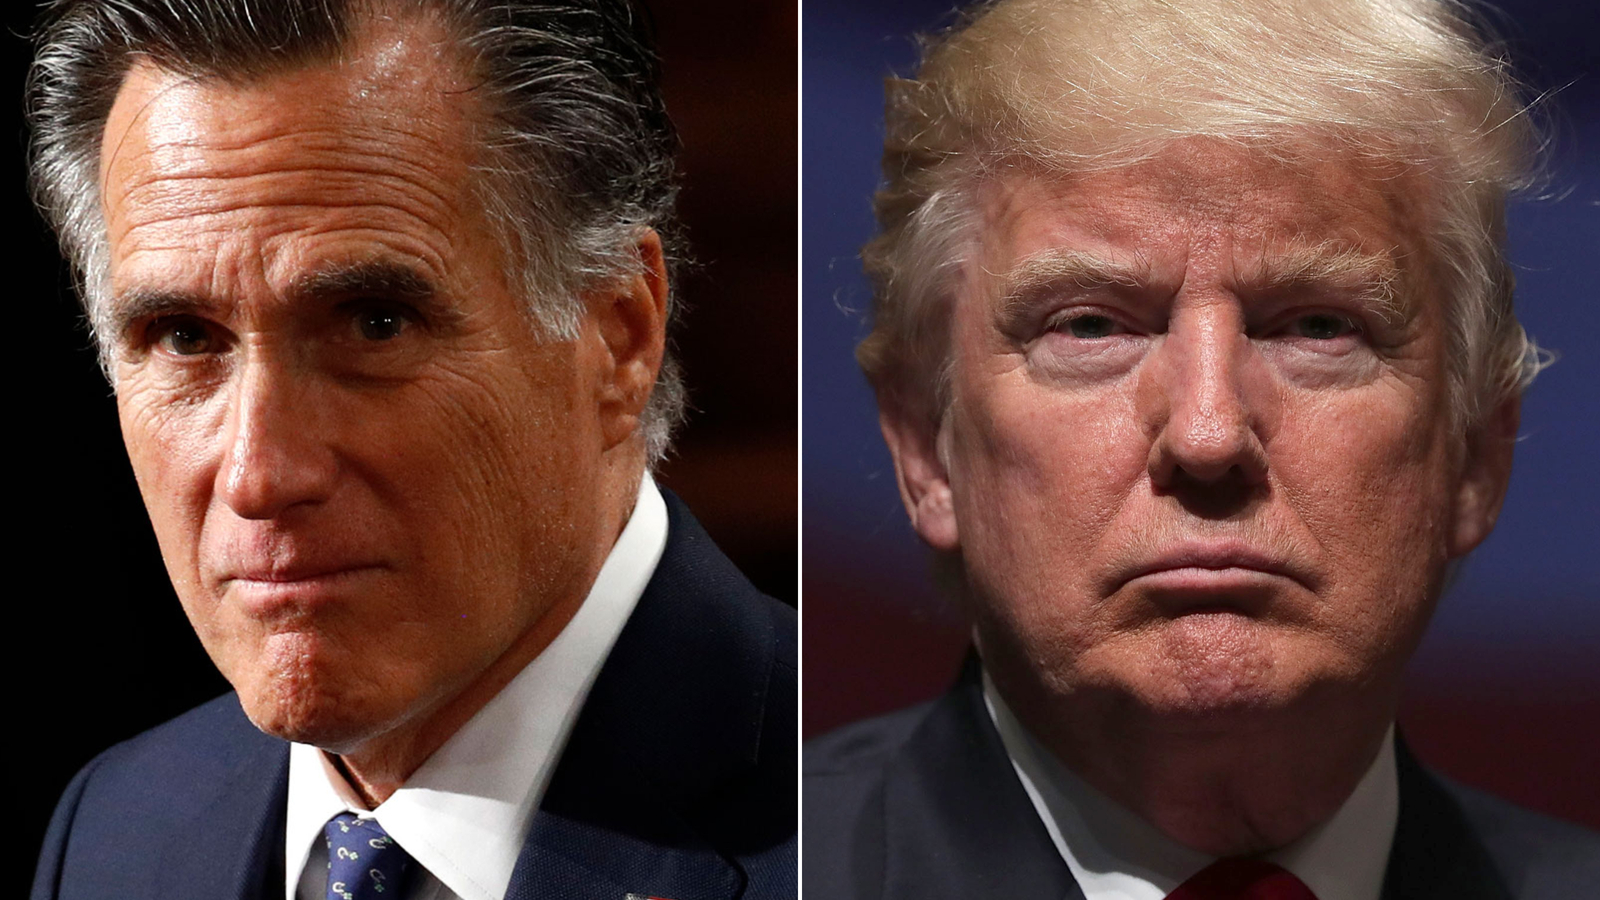 Mitt Romney says he sees no evidence mail-in voting would increase voter fraud